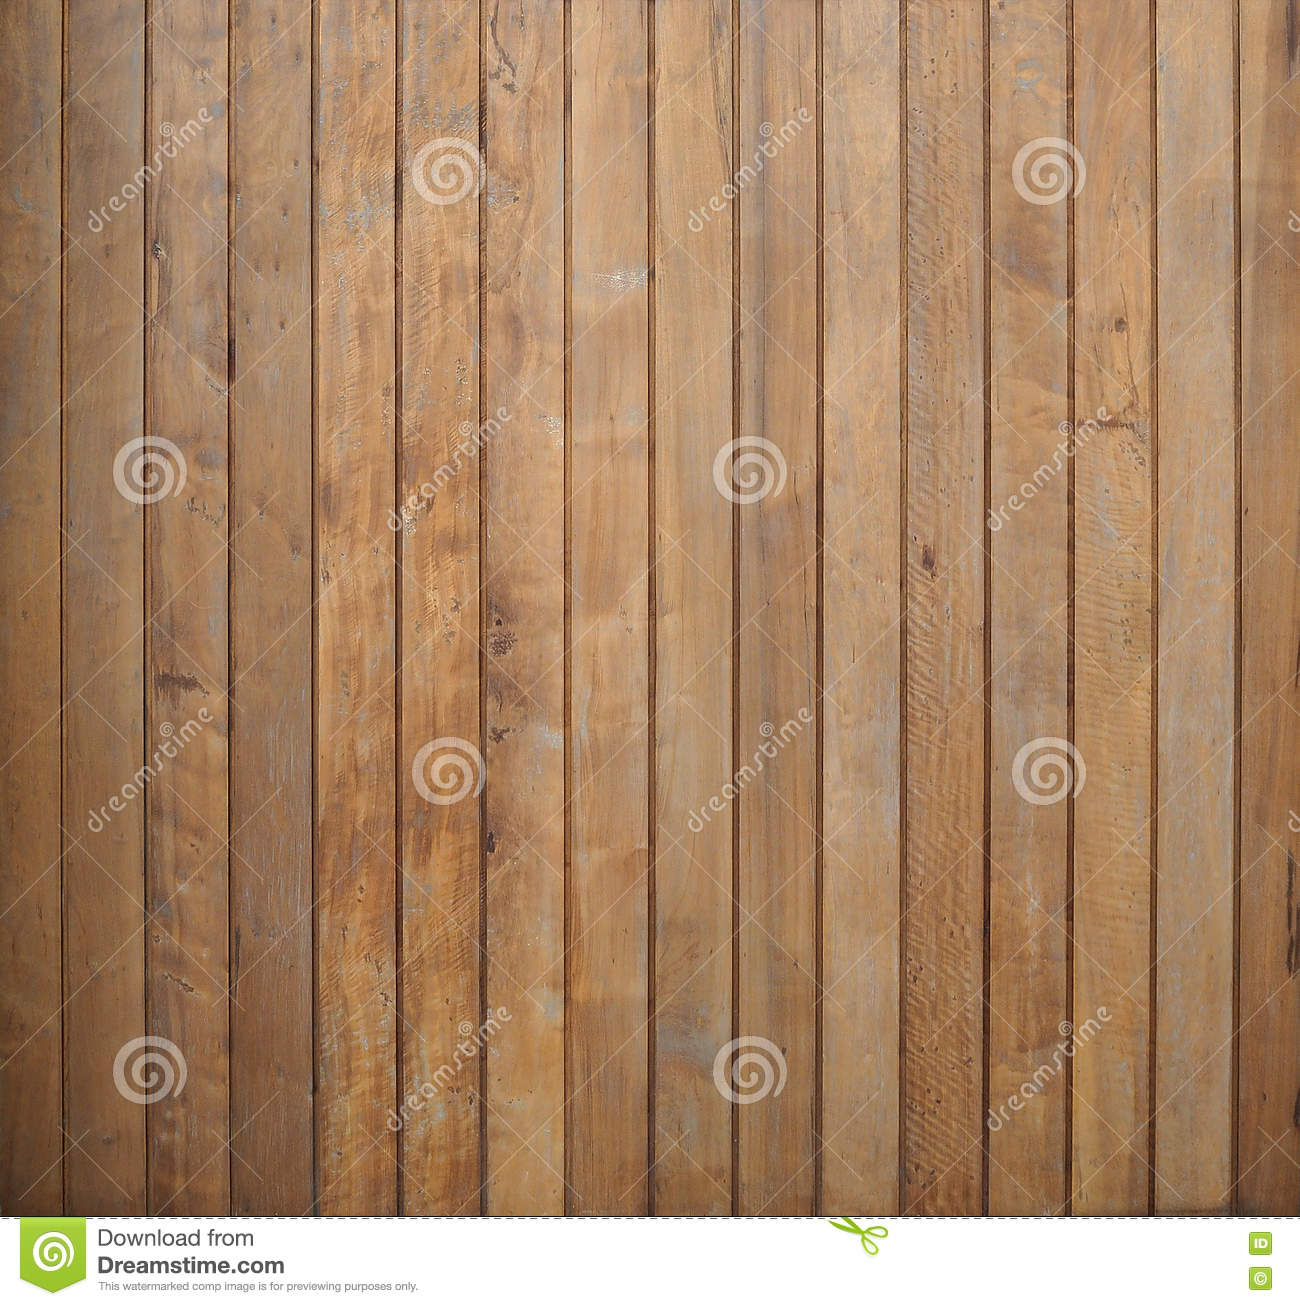 Color Hut Textures: Wooden Panel Textures Brown Color Stock Photo